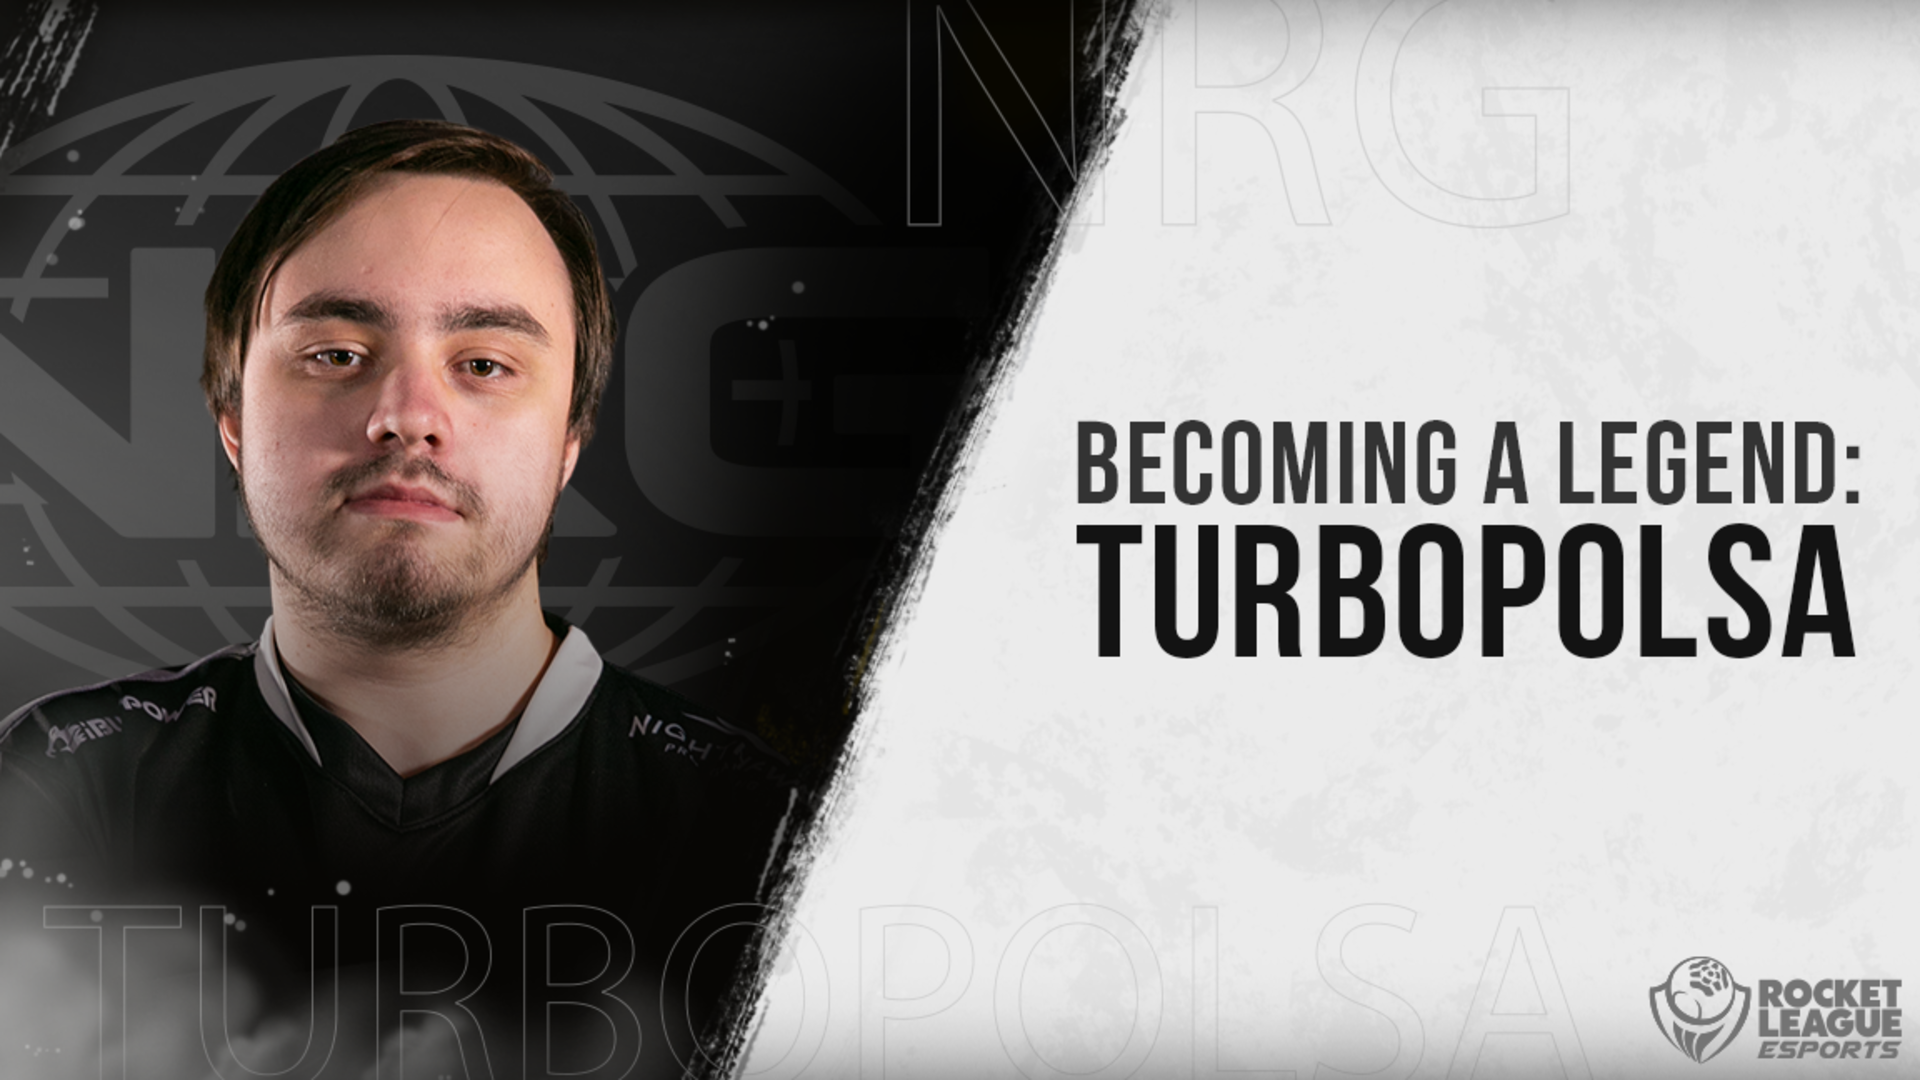 Becoming a Legend: Turbopolsa Image